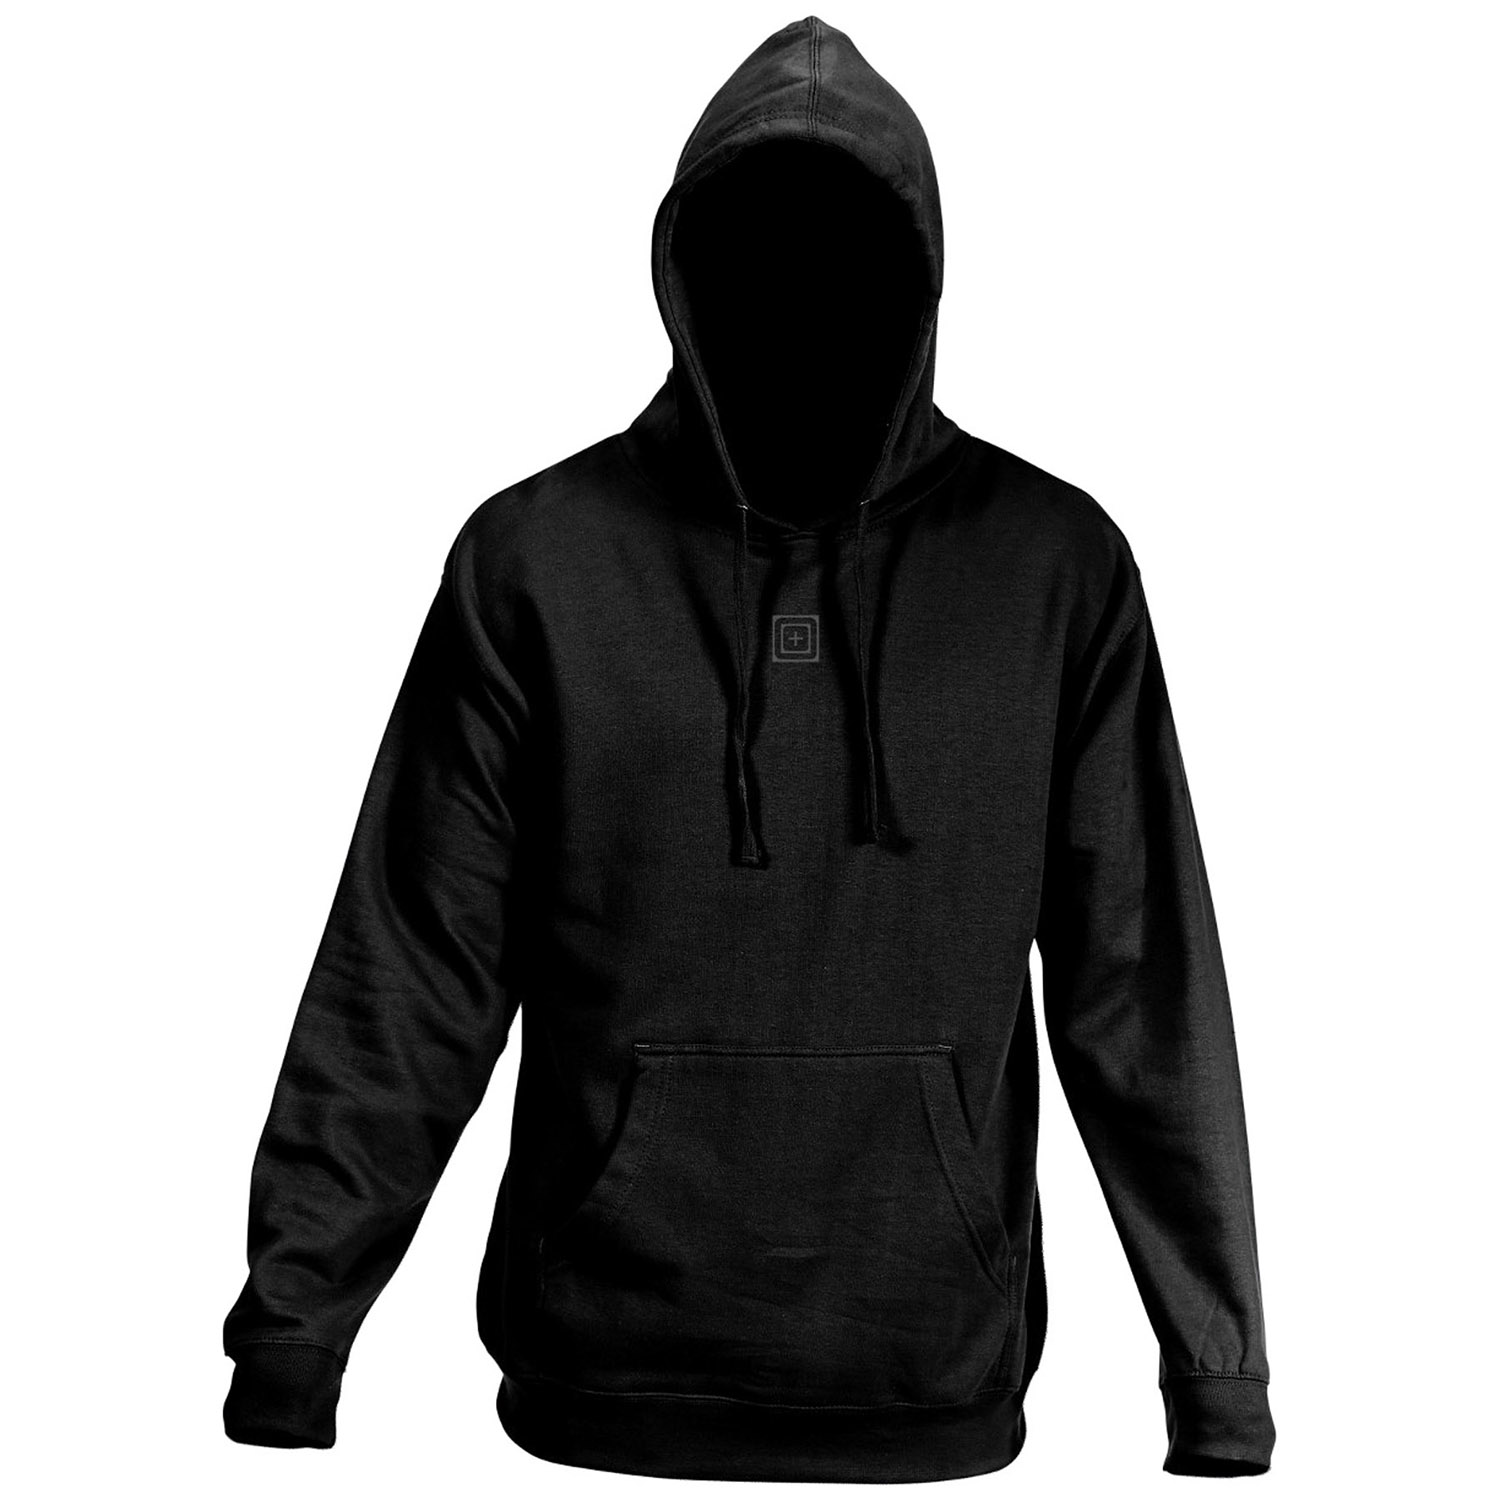 5.11 Tactical Scope Hoodie